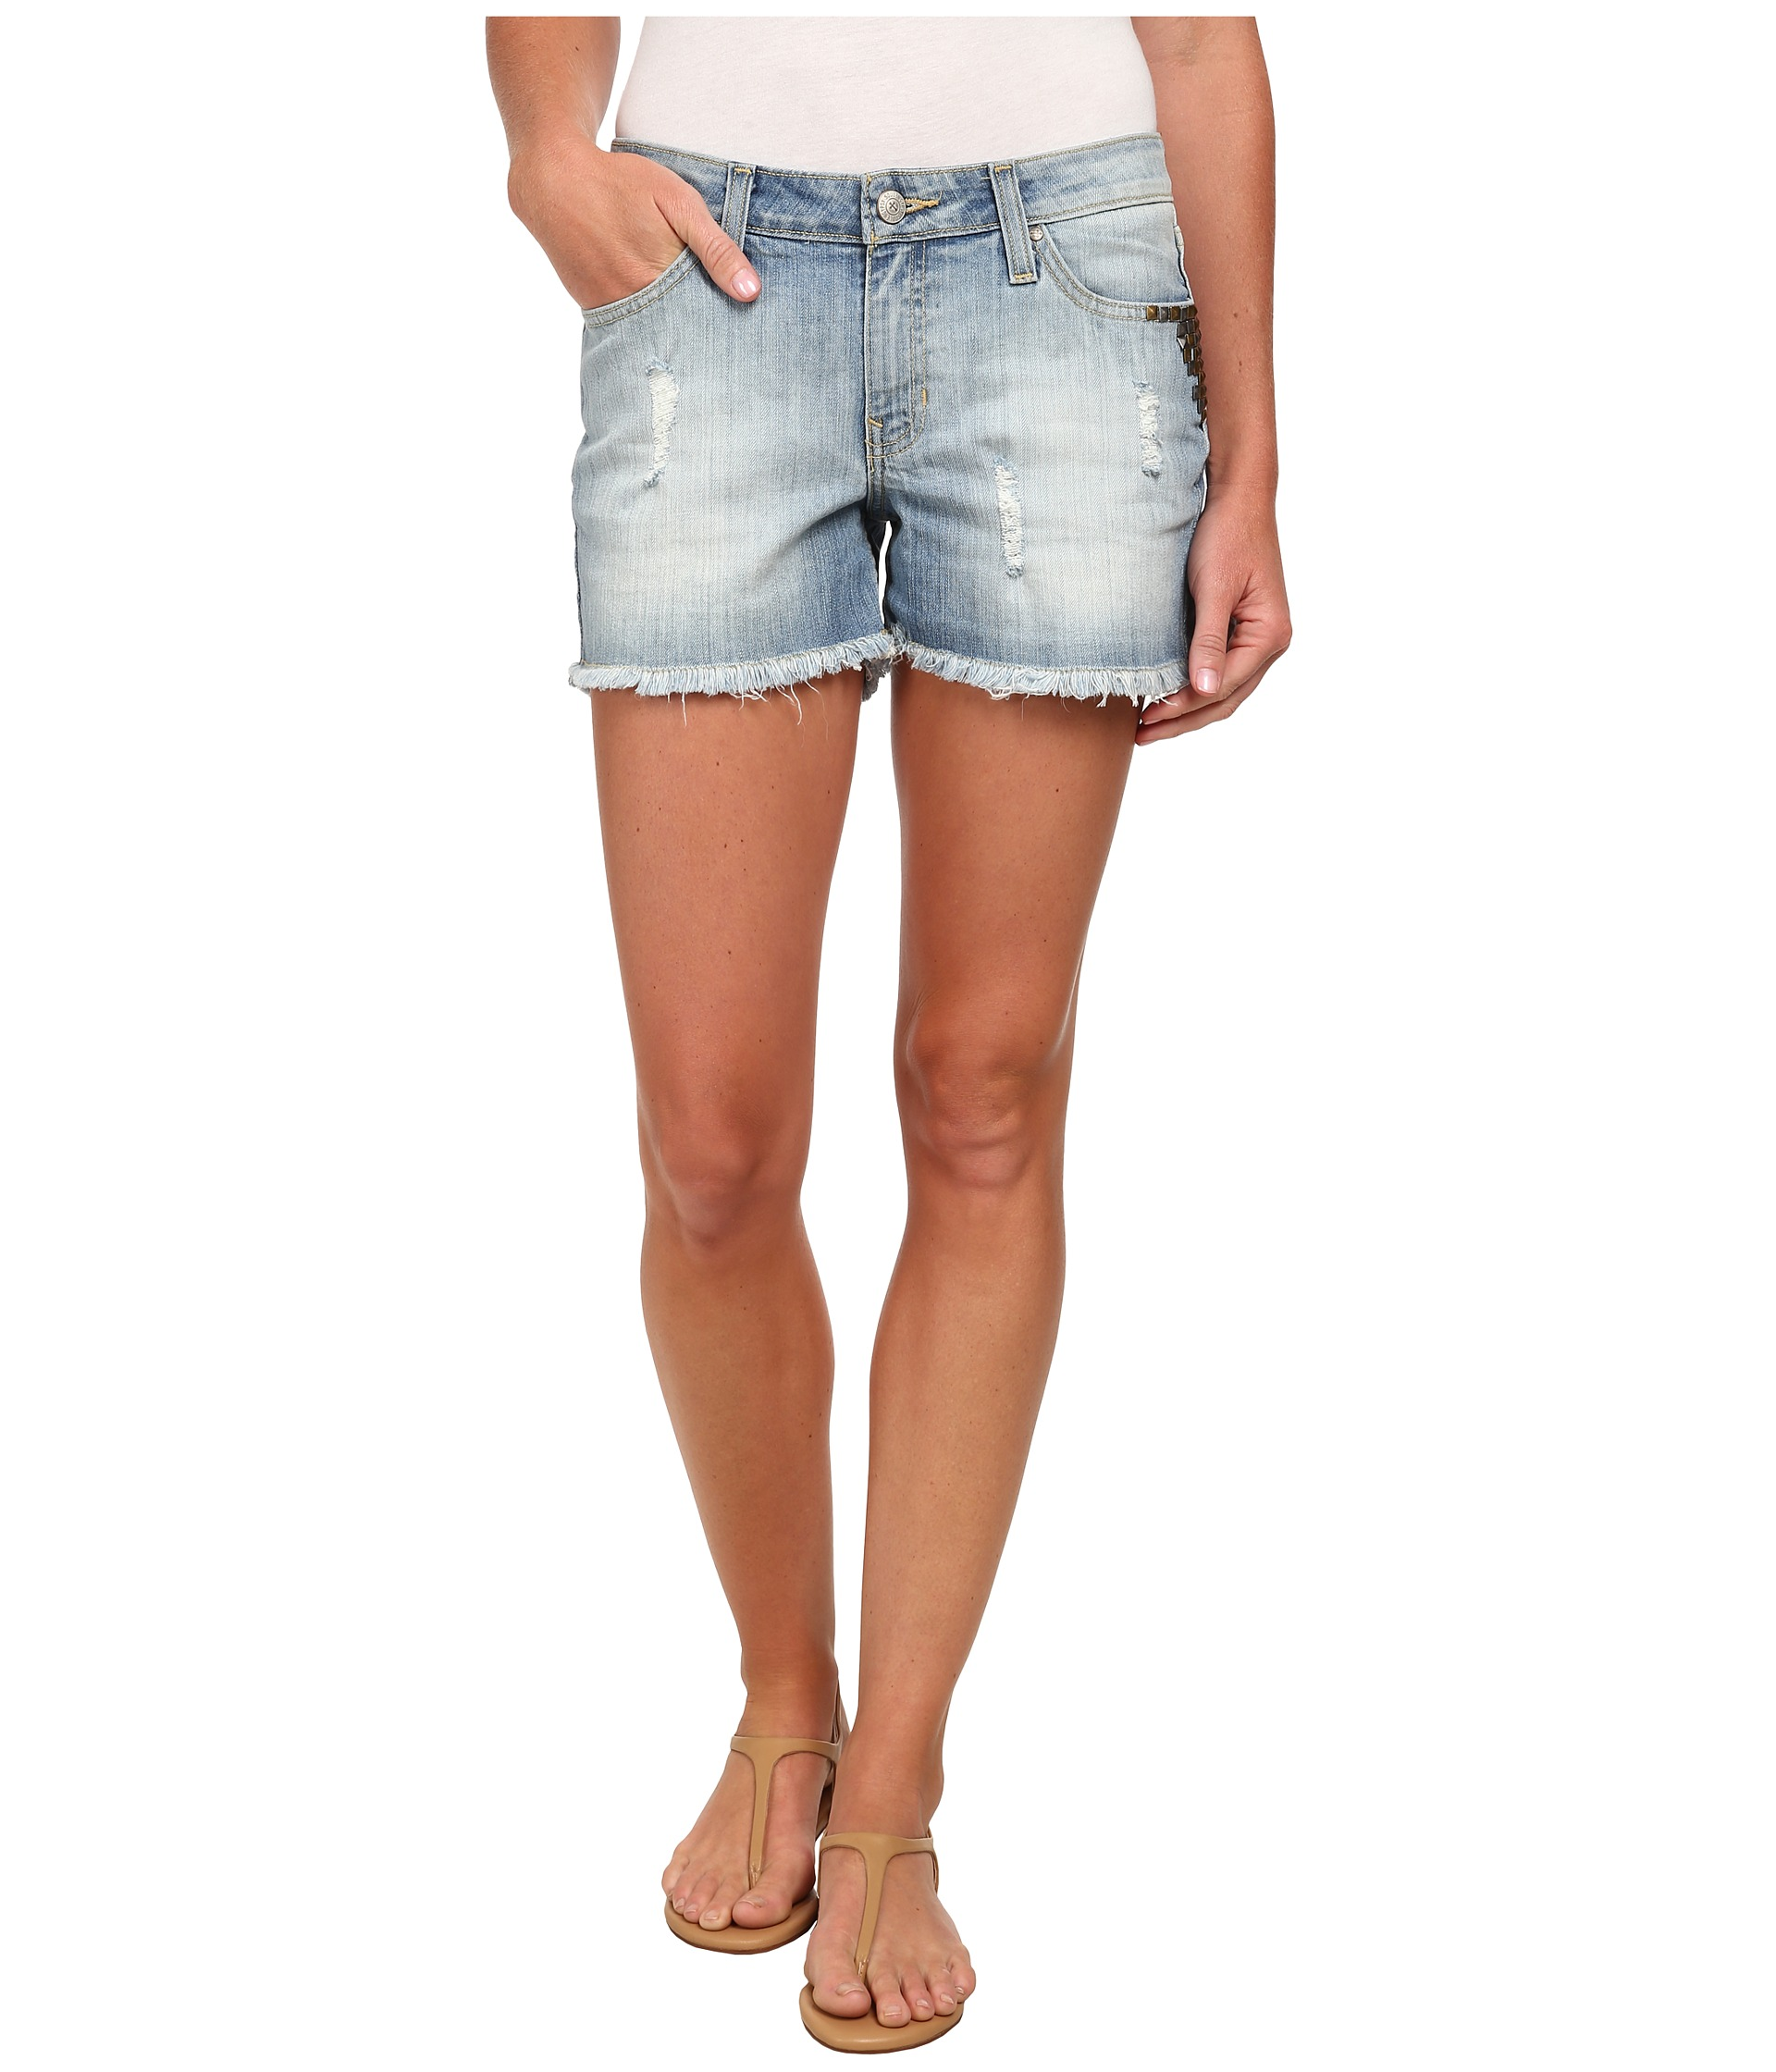 Gypsy SOULE Button-fly Closure Studette Shorts